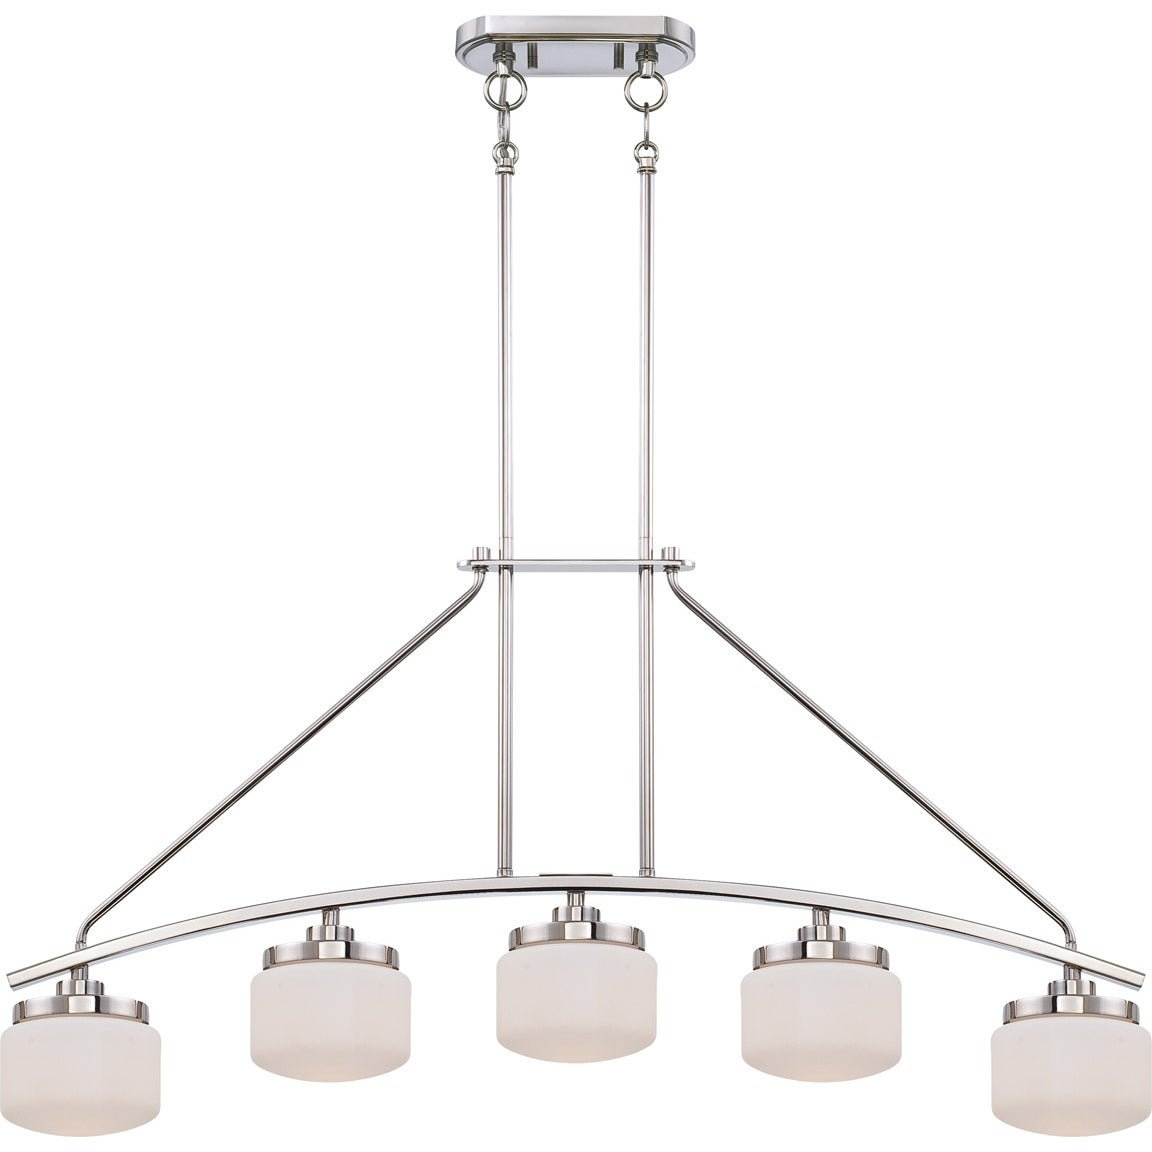 Nuvo 'Austin' 5-light Polished Nickel Pendant